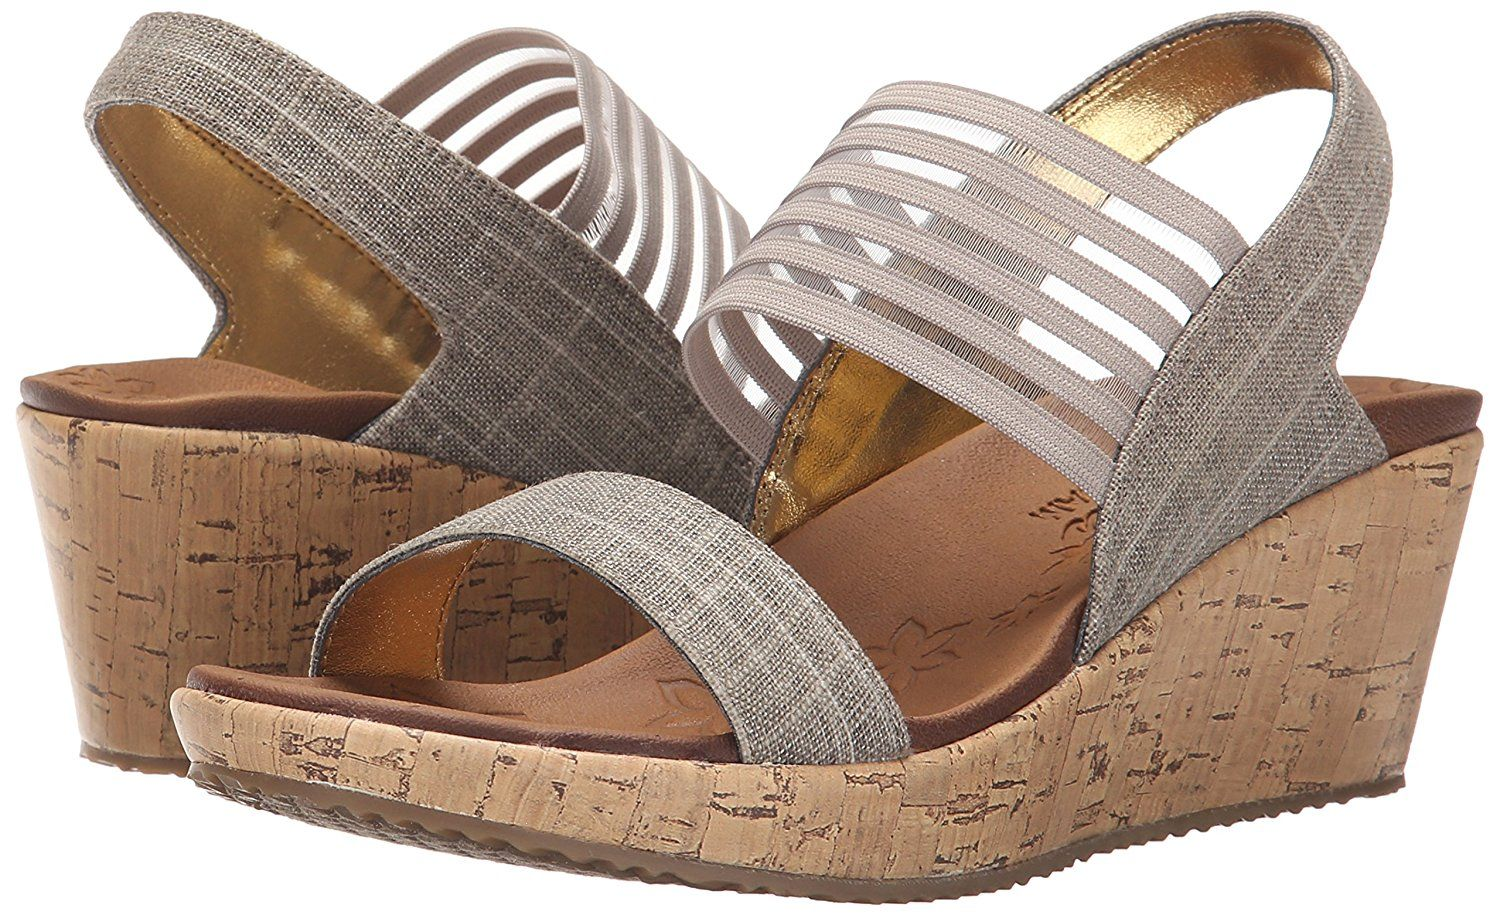 Skechers Cali Women S Beverlee Smitten Kitten Wedge Sandal Want To Know More Click On The Image This Is An Affilia Skechers Womens Sandals Skechers Wedges